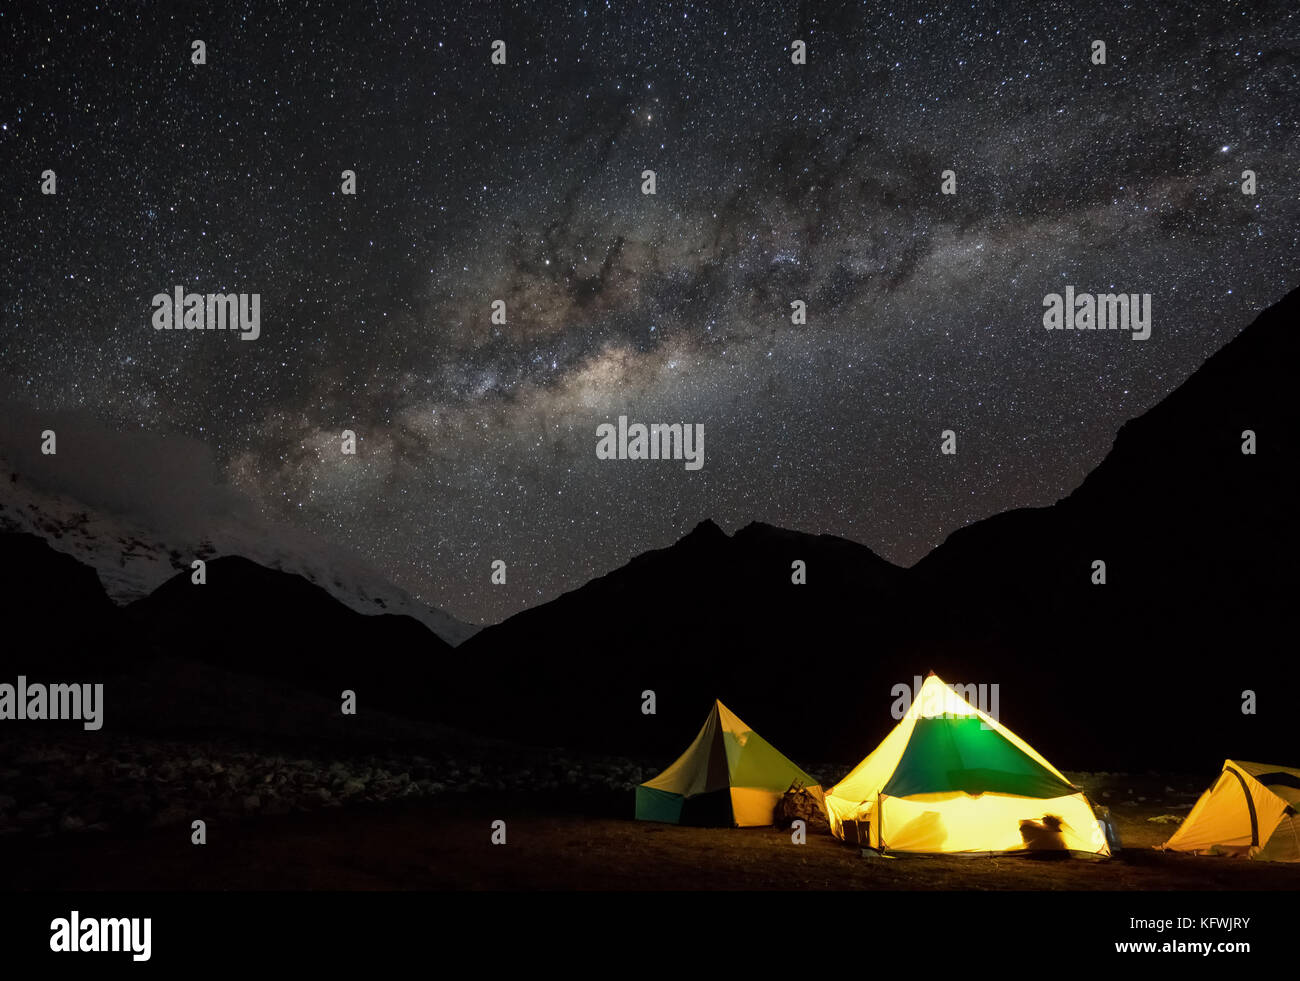 Starry sky and Milky Way over the Ishinca base camp, Peru - Stock Image